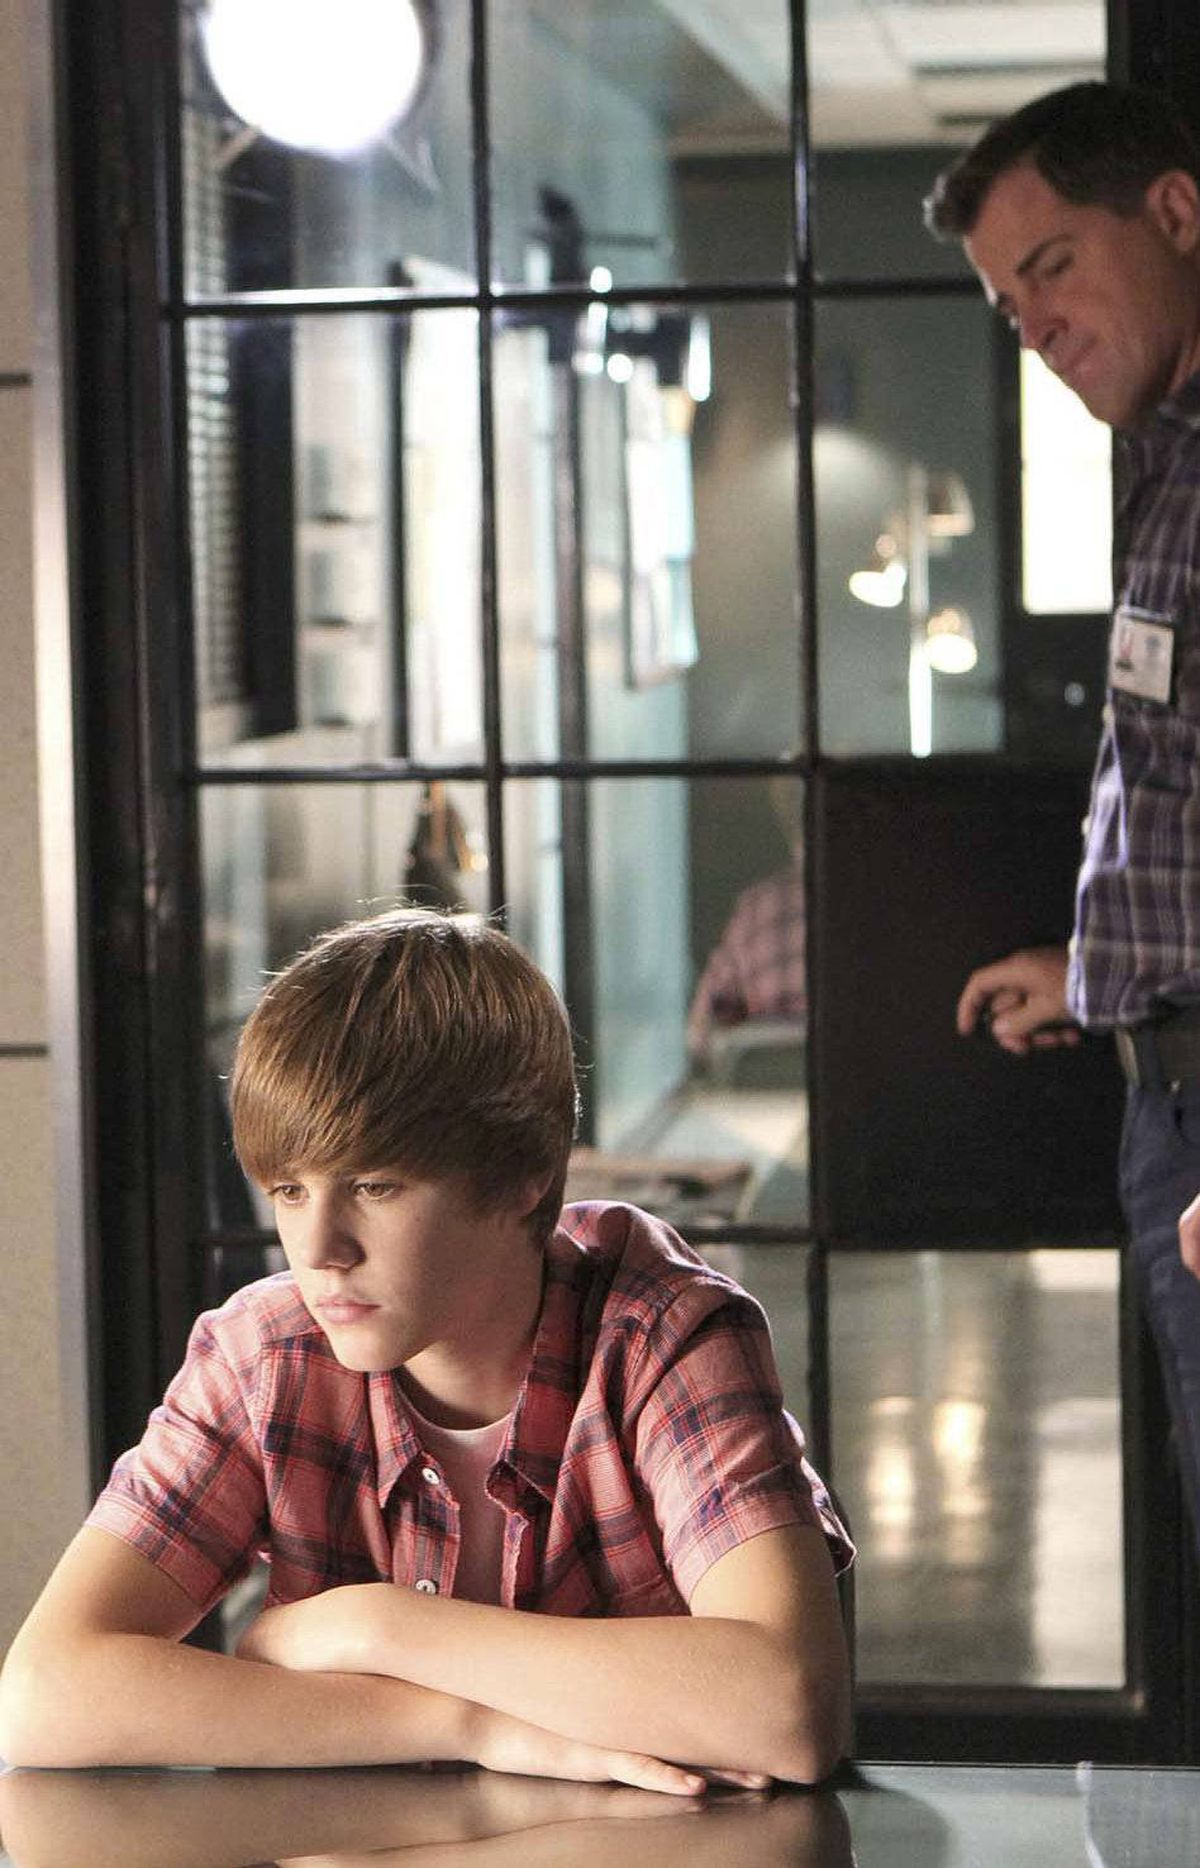 """On Feb. 17, Bieber made his acting debut playing a brooding teenager named Jason McCann in an episode of """"CSI: Crime Scene Investigation"""" entitled """"Targets of Obsession."""""""